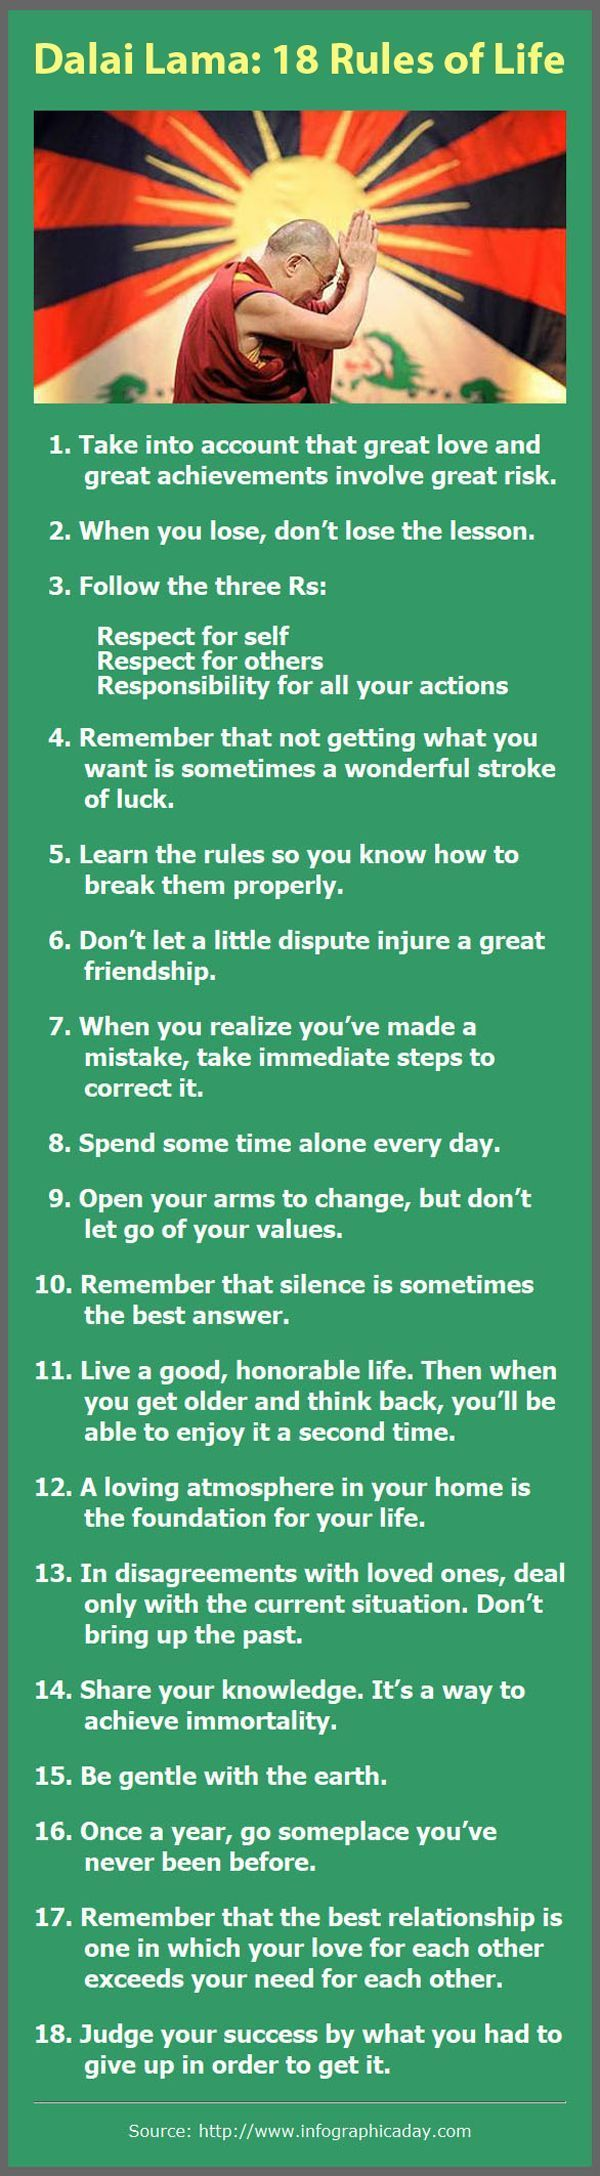 Worth re-pinning... #5 has to be my fav though. Blindly following the rules is just called conformity.